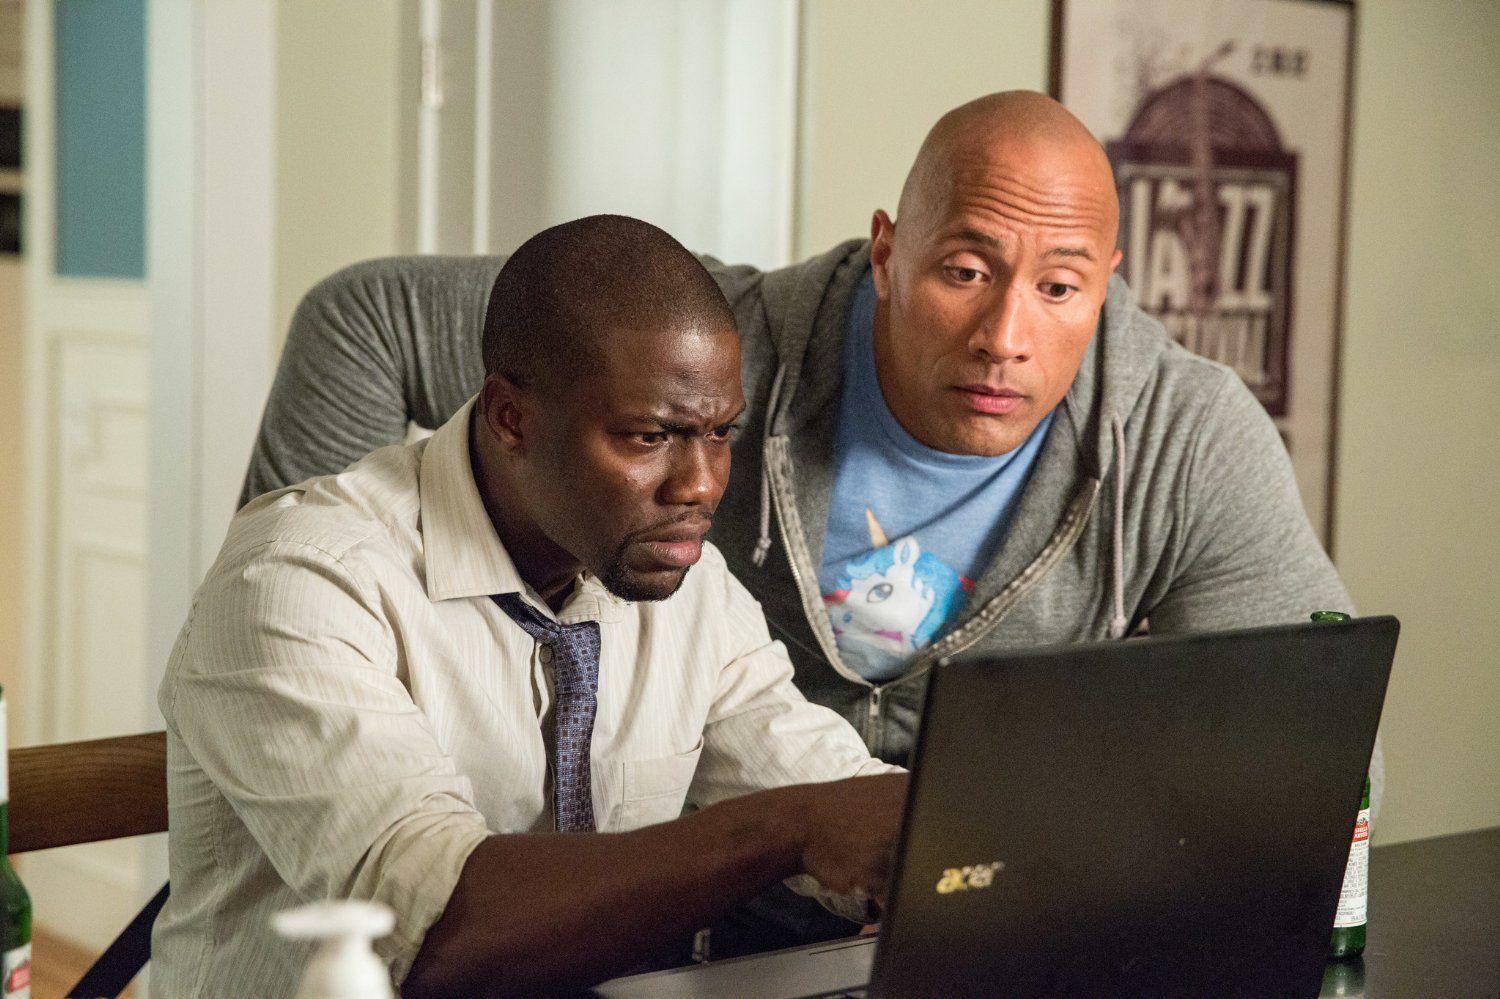 24 New HiRes Images from CENTRAL INTELLIGENCE Starring